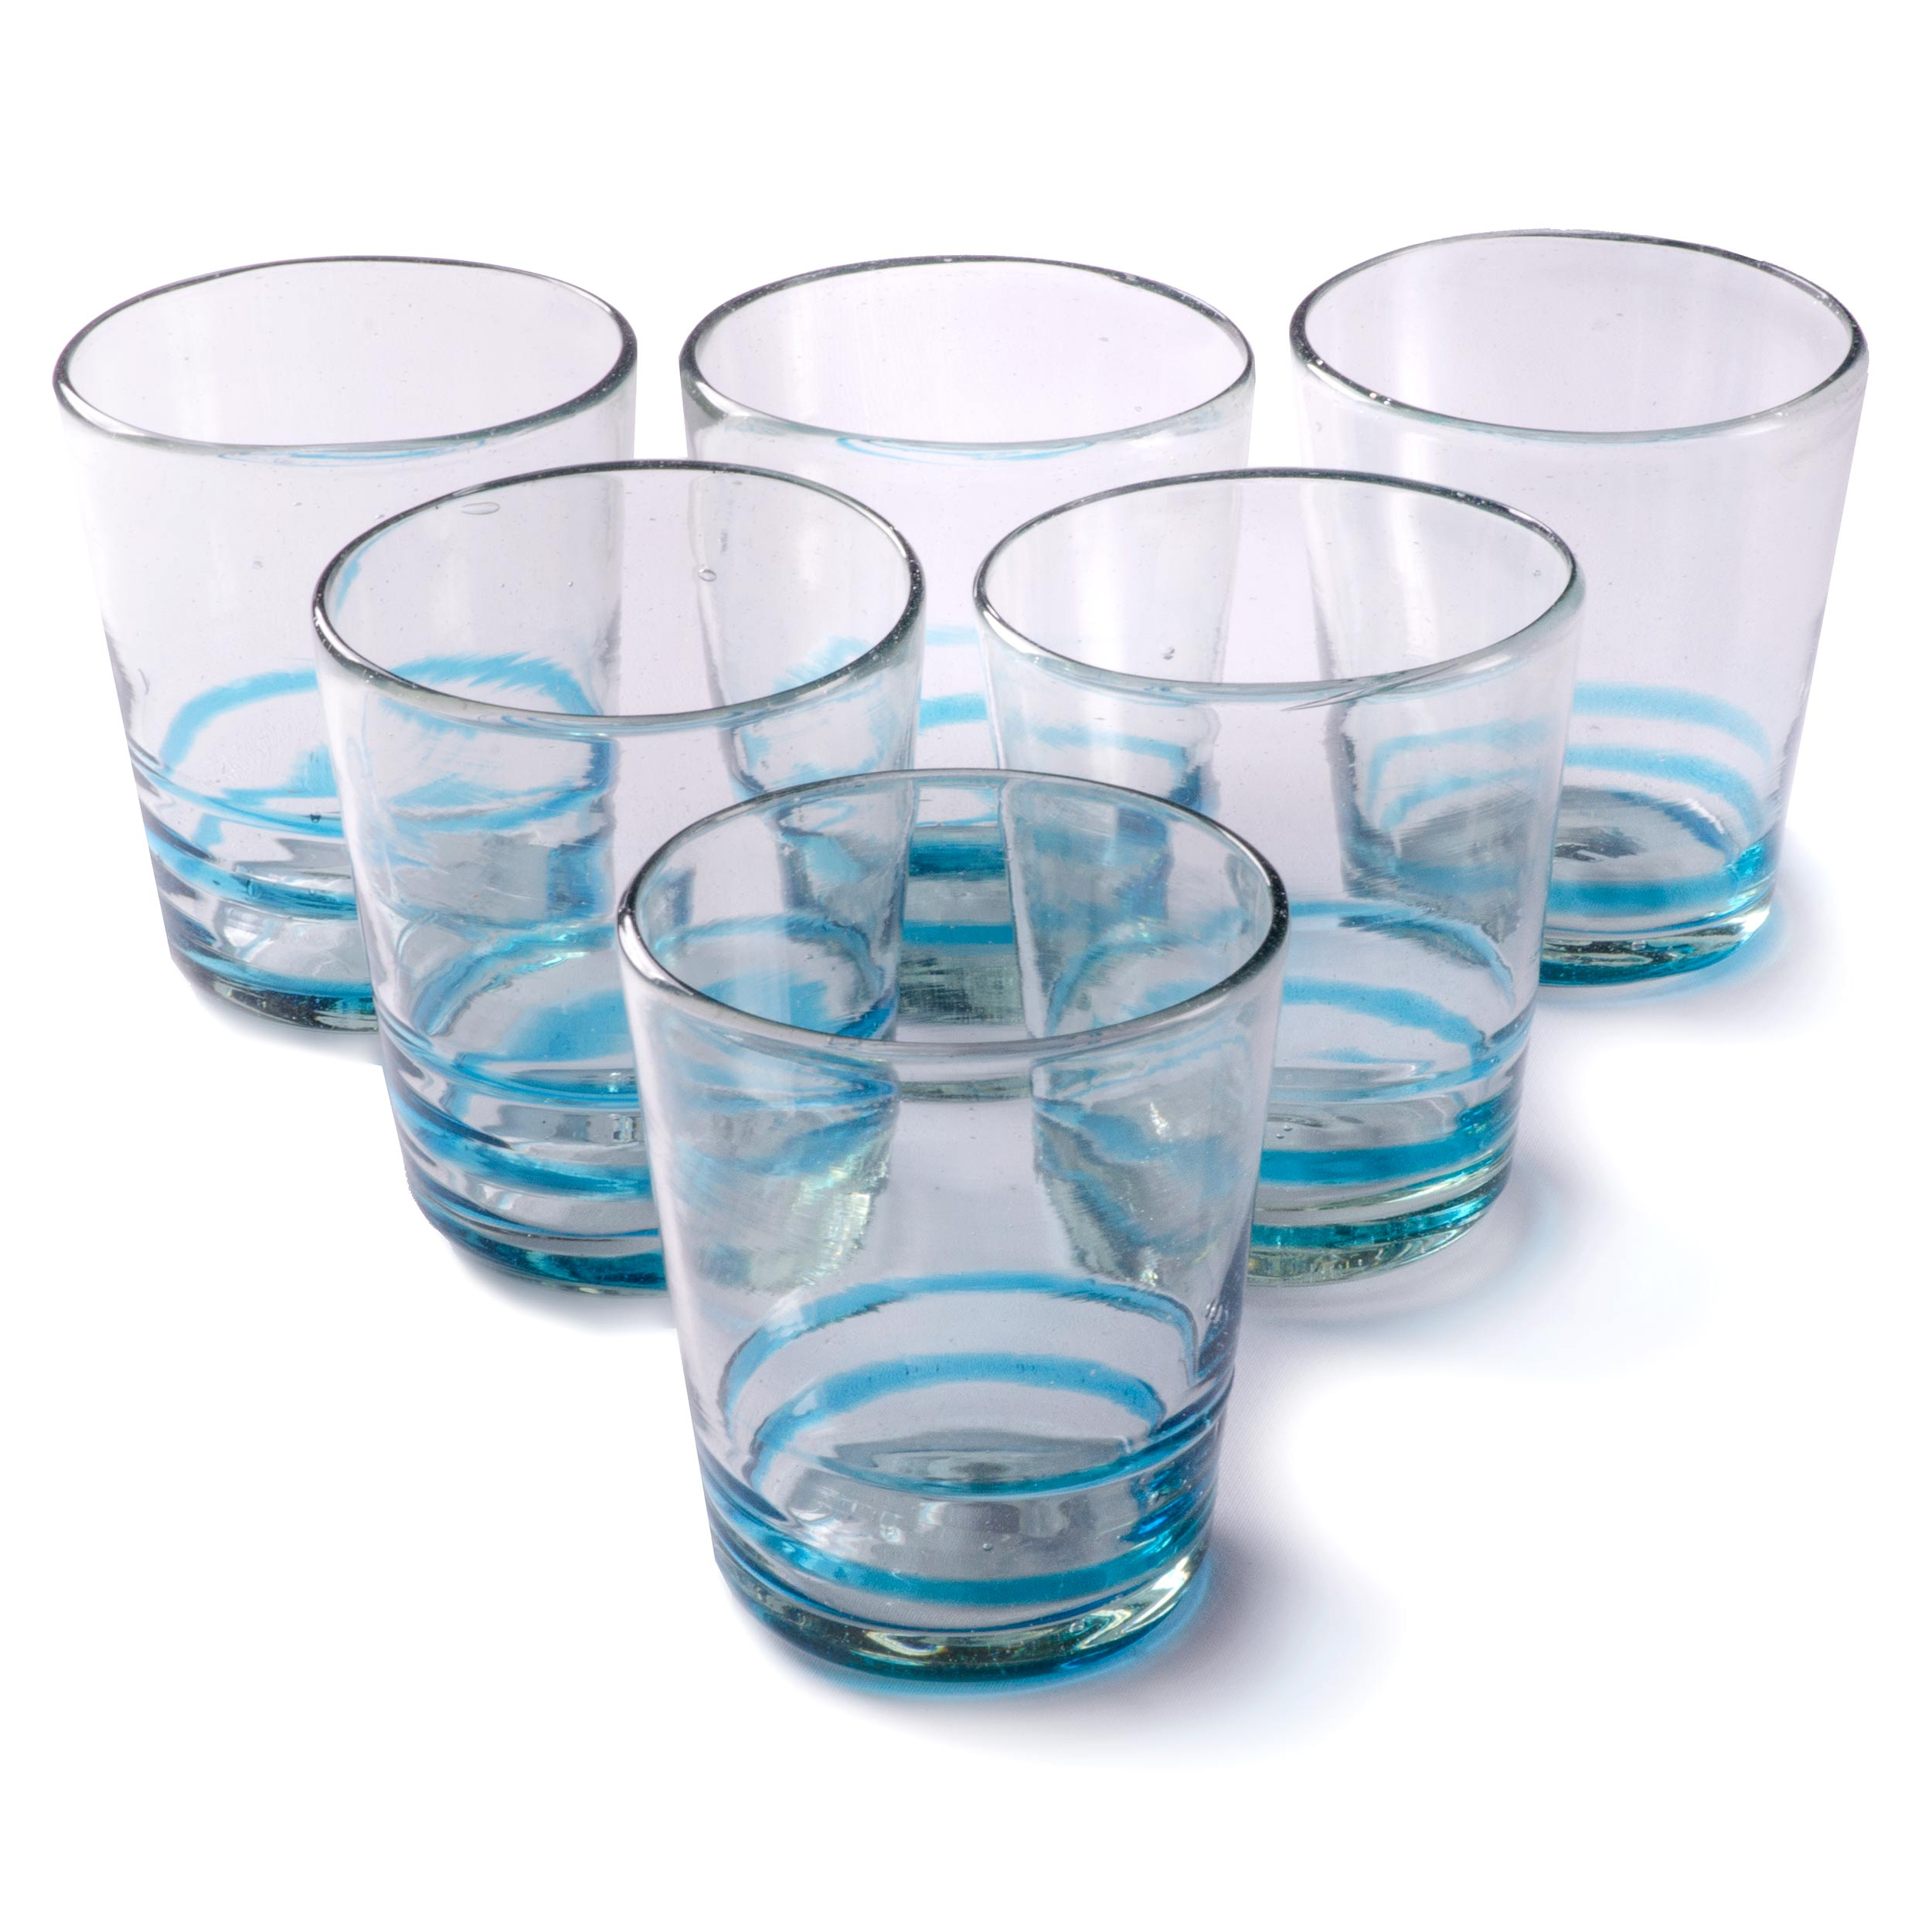 Orion Turquoise Serpentine 12 oz Short - Set of 6 - Orion's Table Mexican Glassware